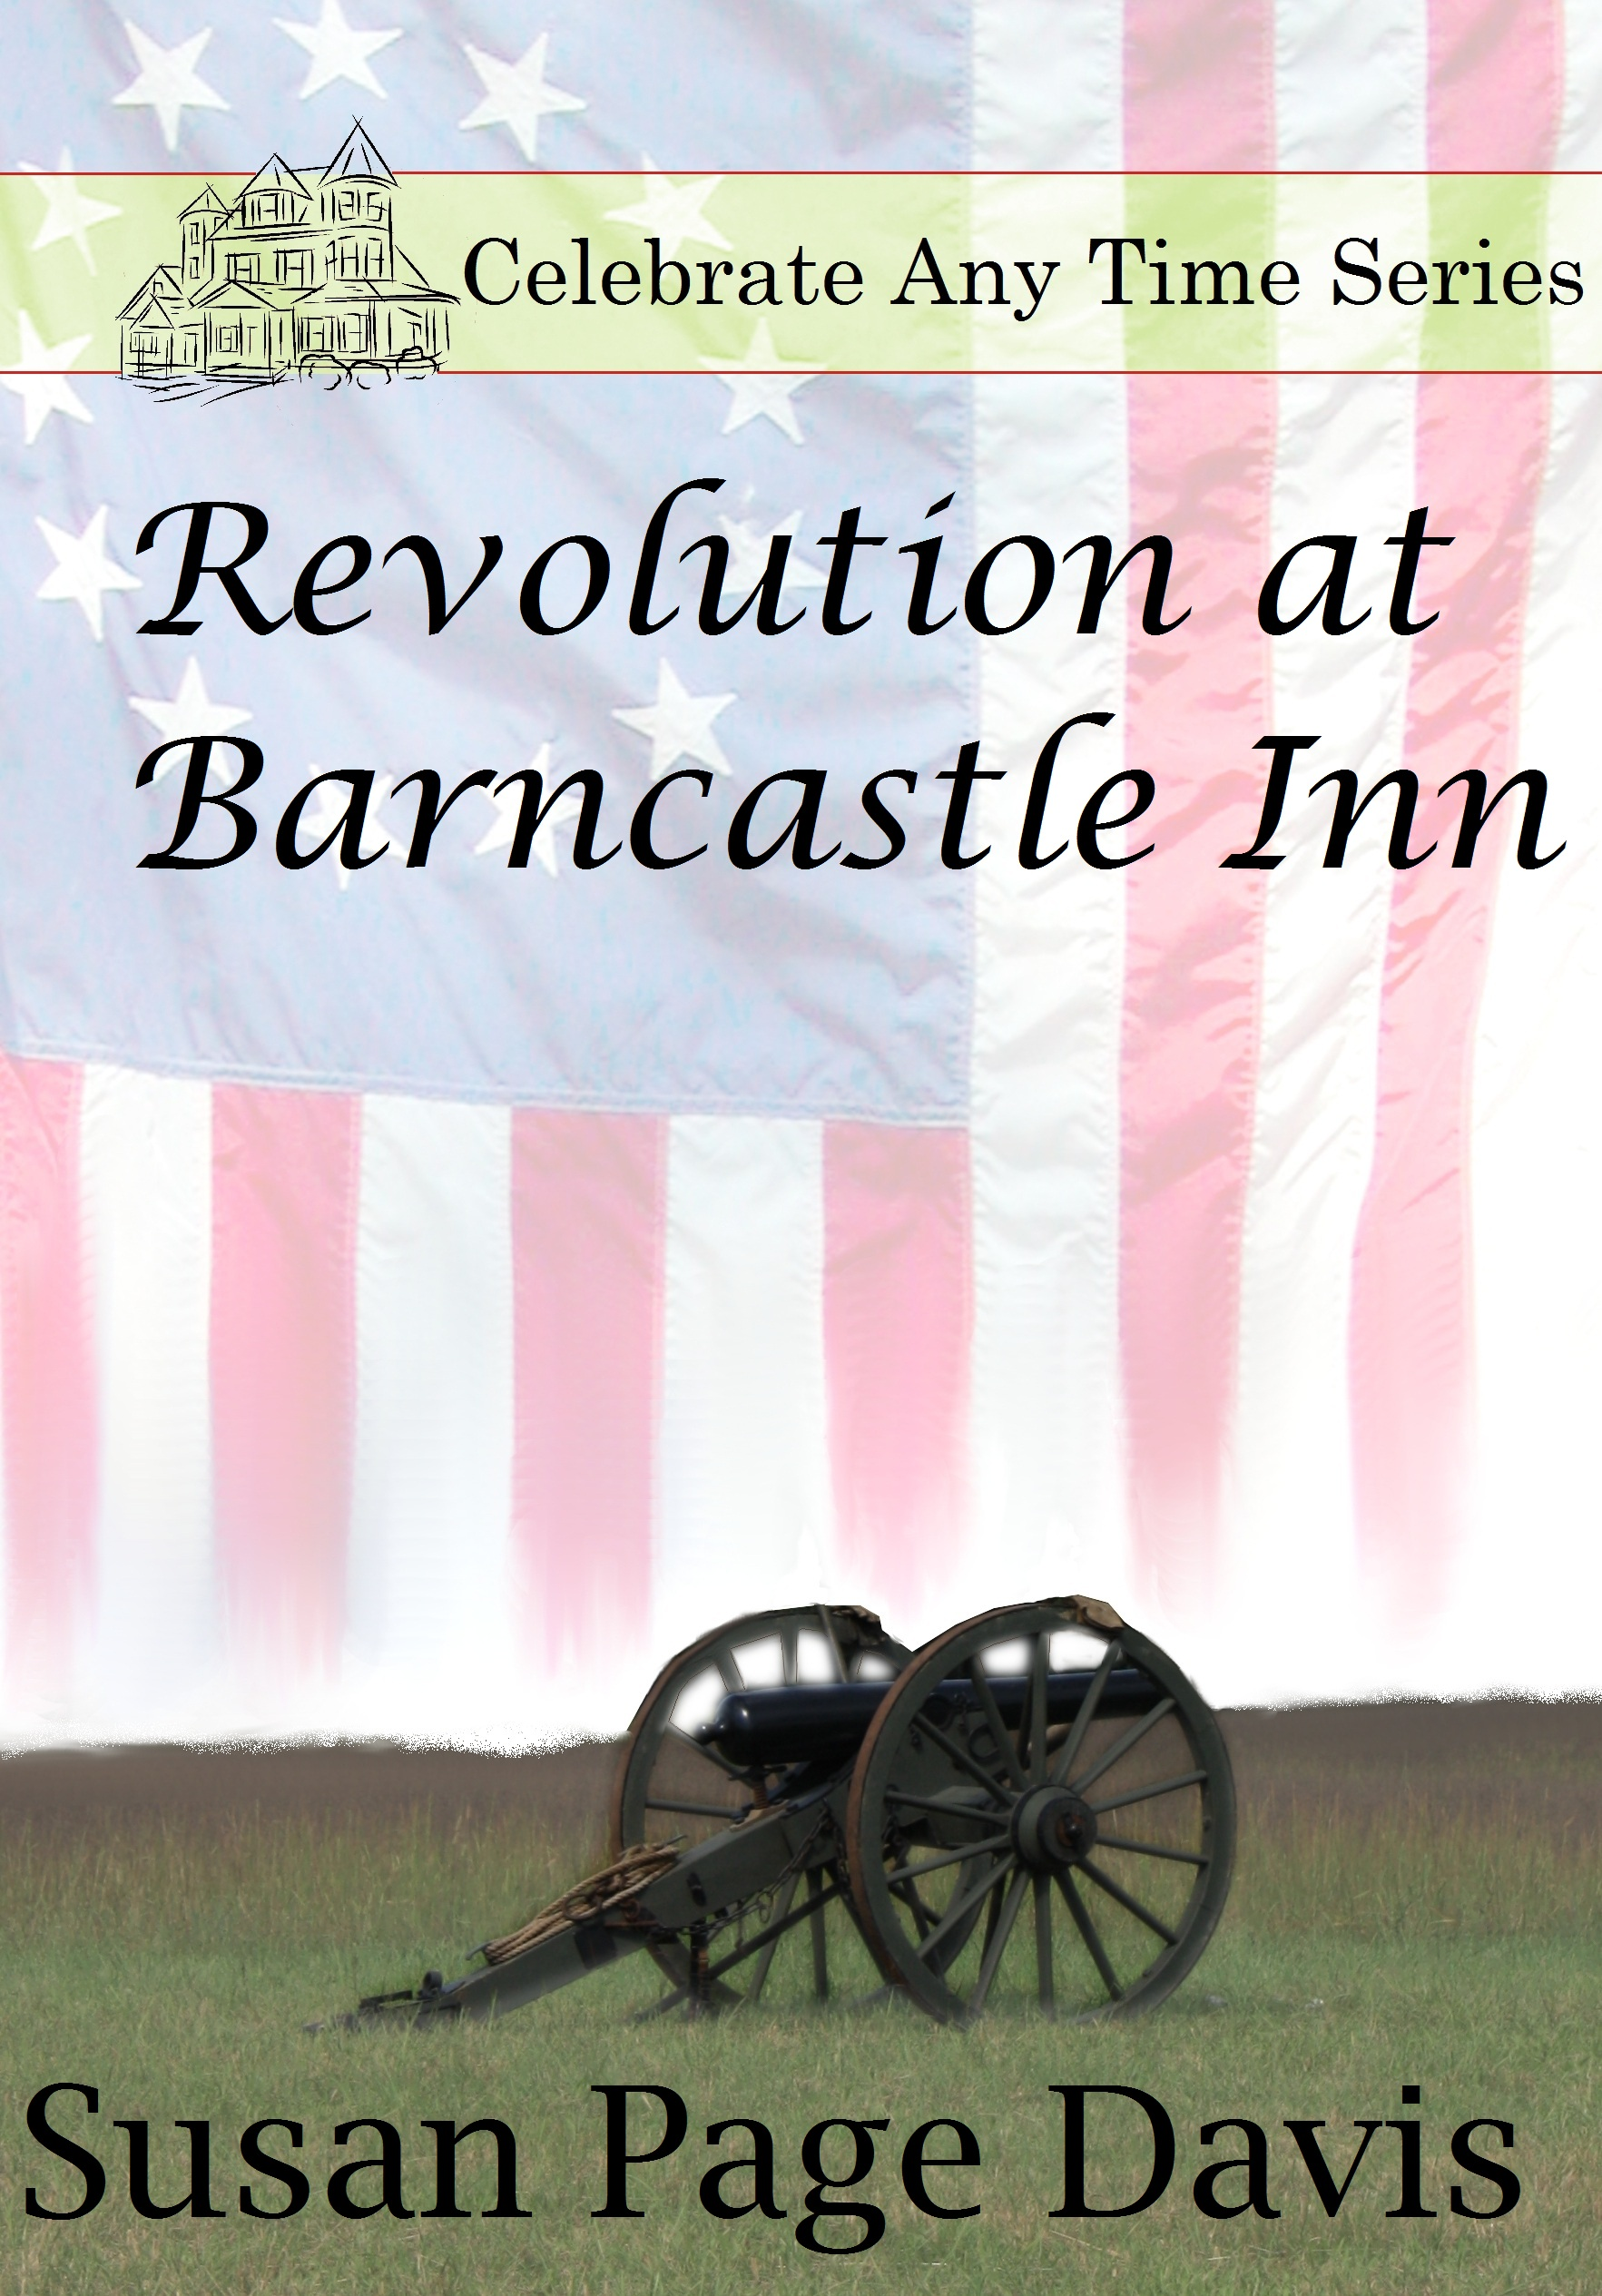 Susan Page Davis - Revolution at Barncastle Inn